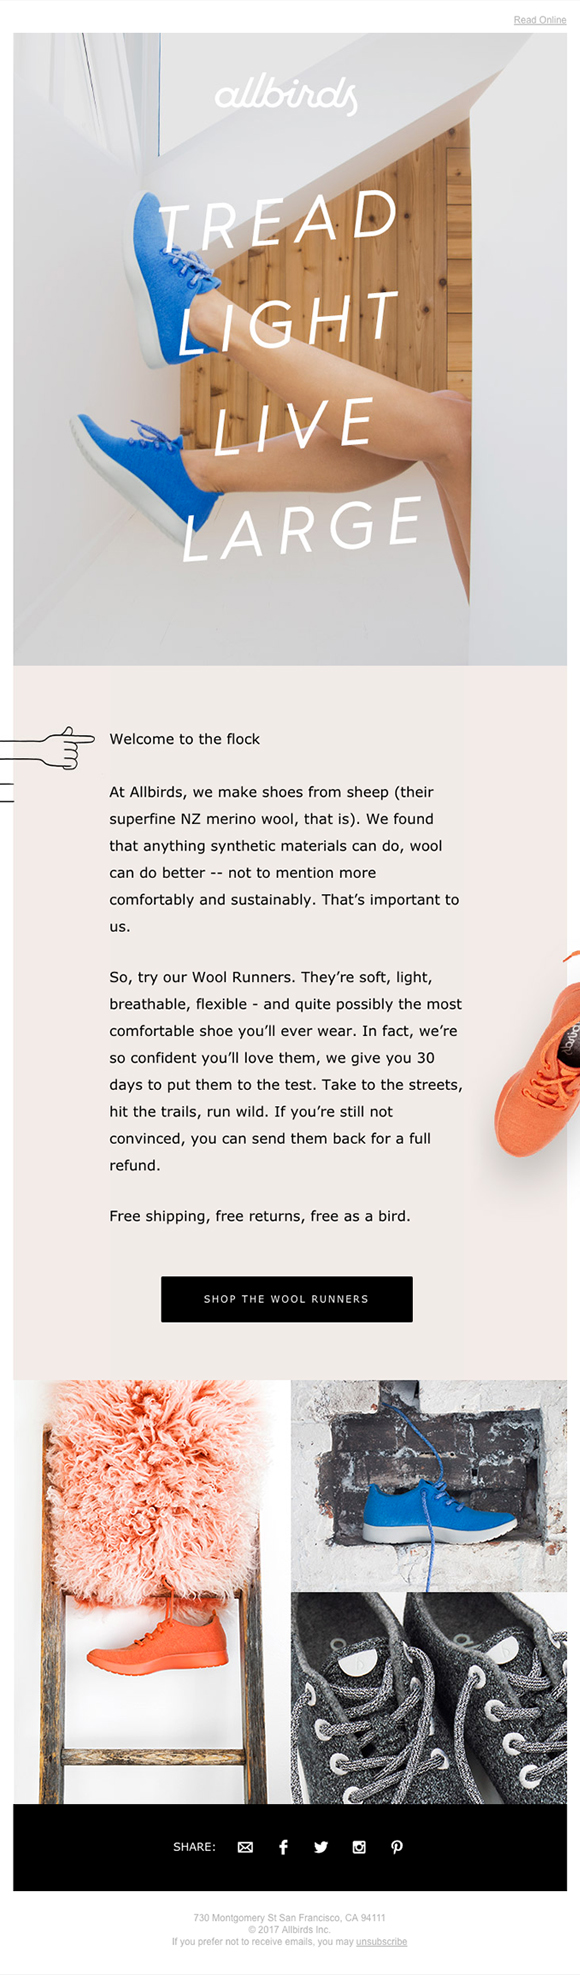 Email example by allbirds - Millennials